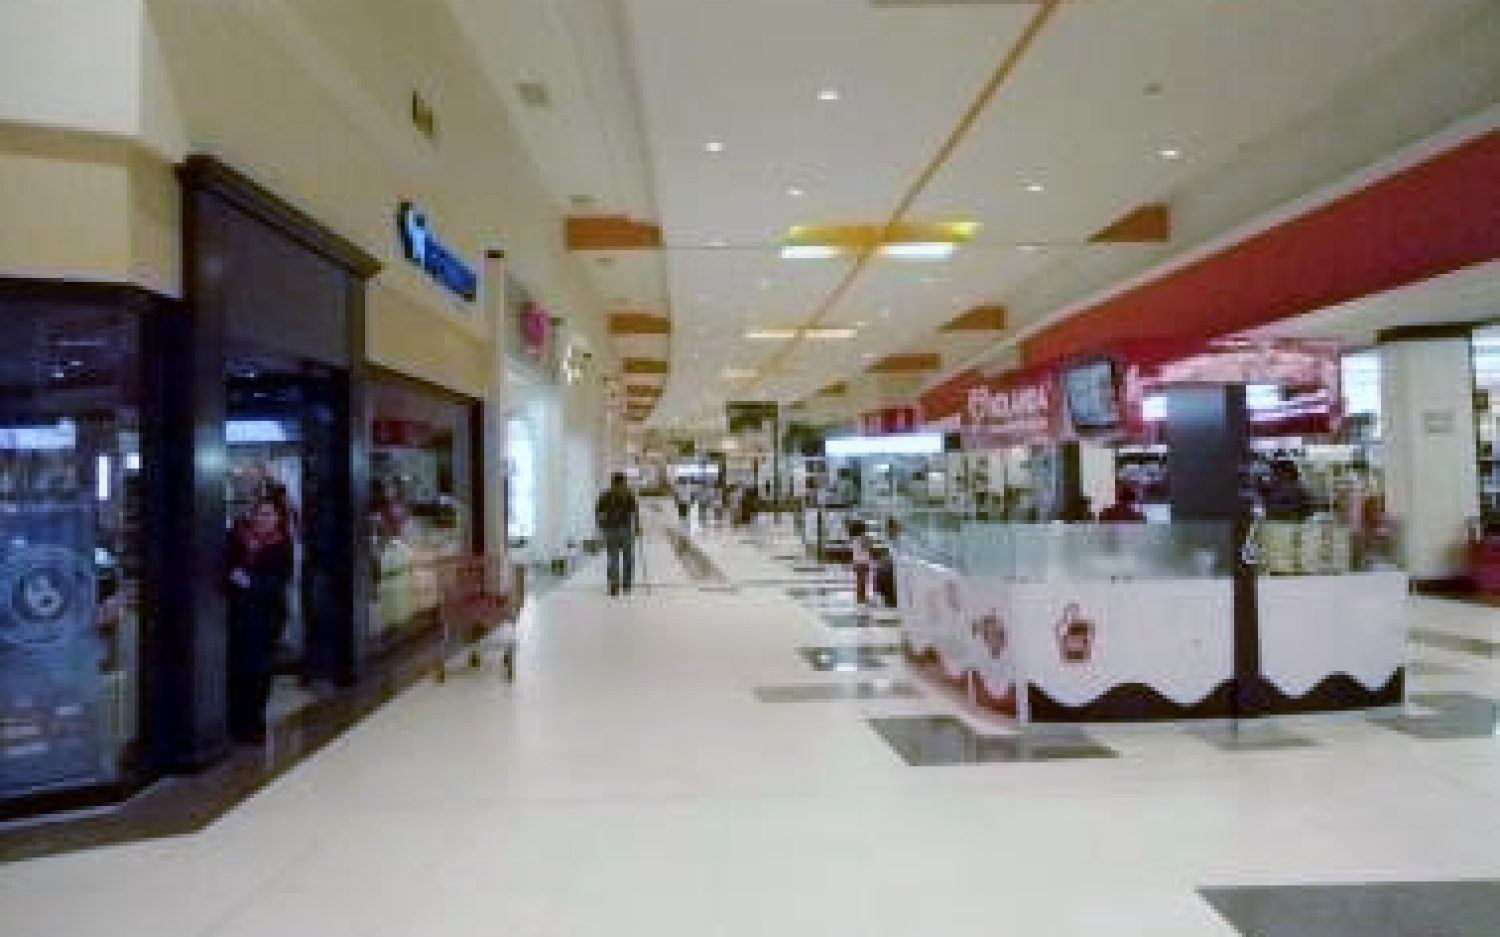 Co-Plaza Sendero Villahermosa (30)